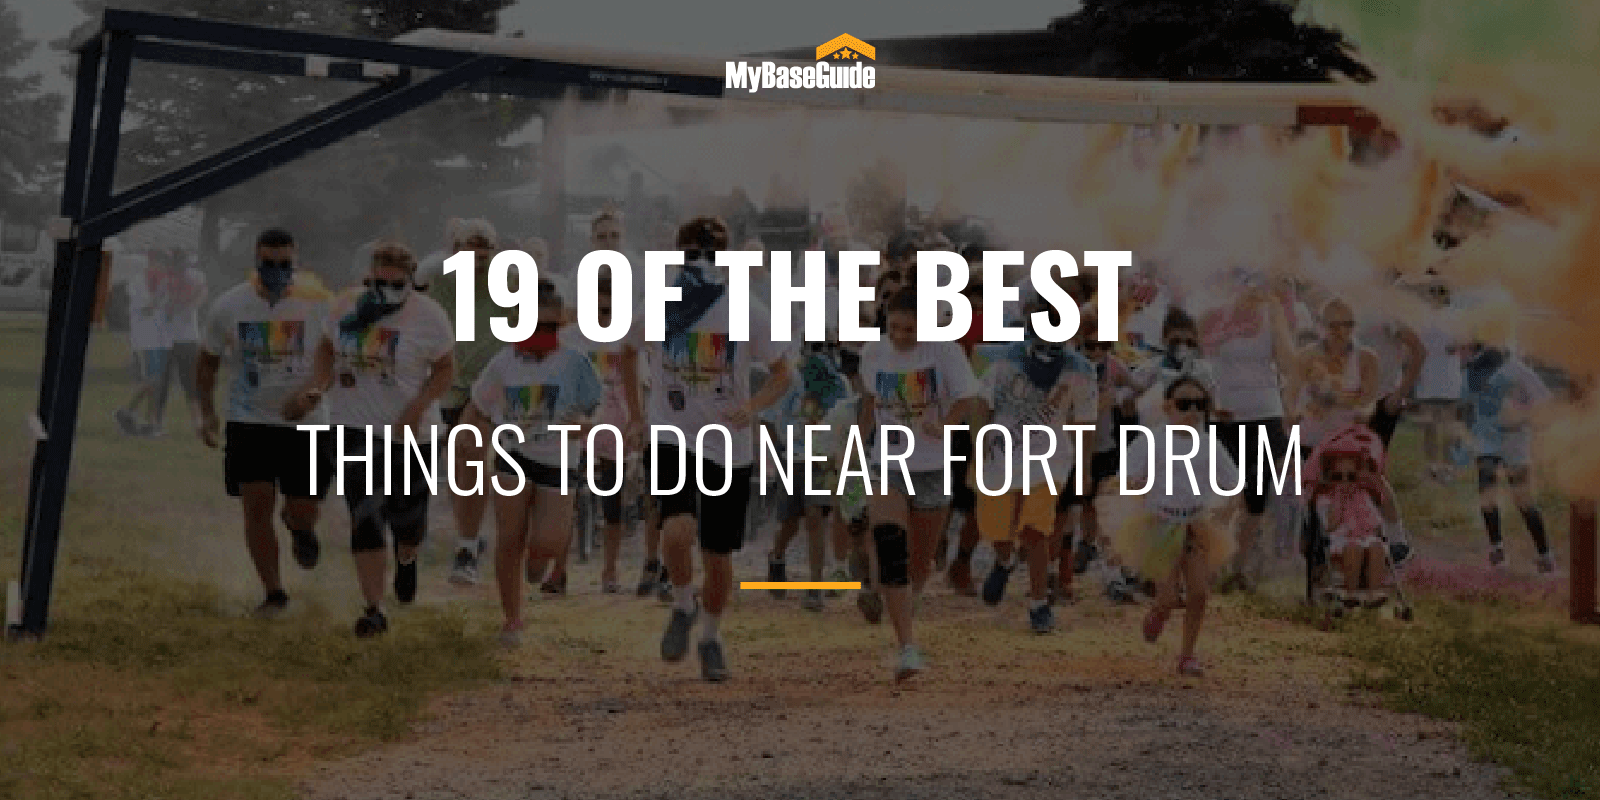 Best Things to Do Near Fort Drum